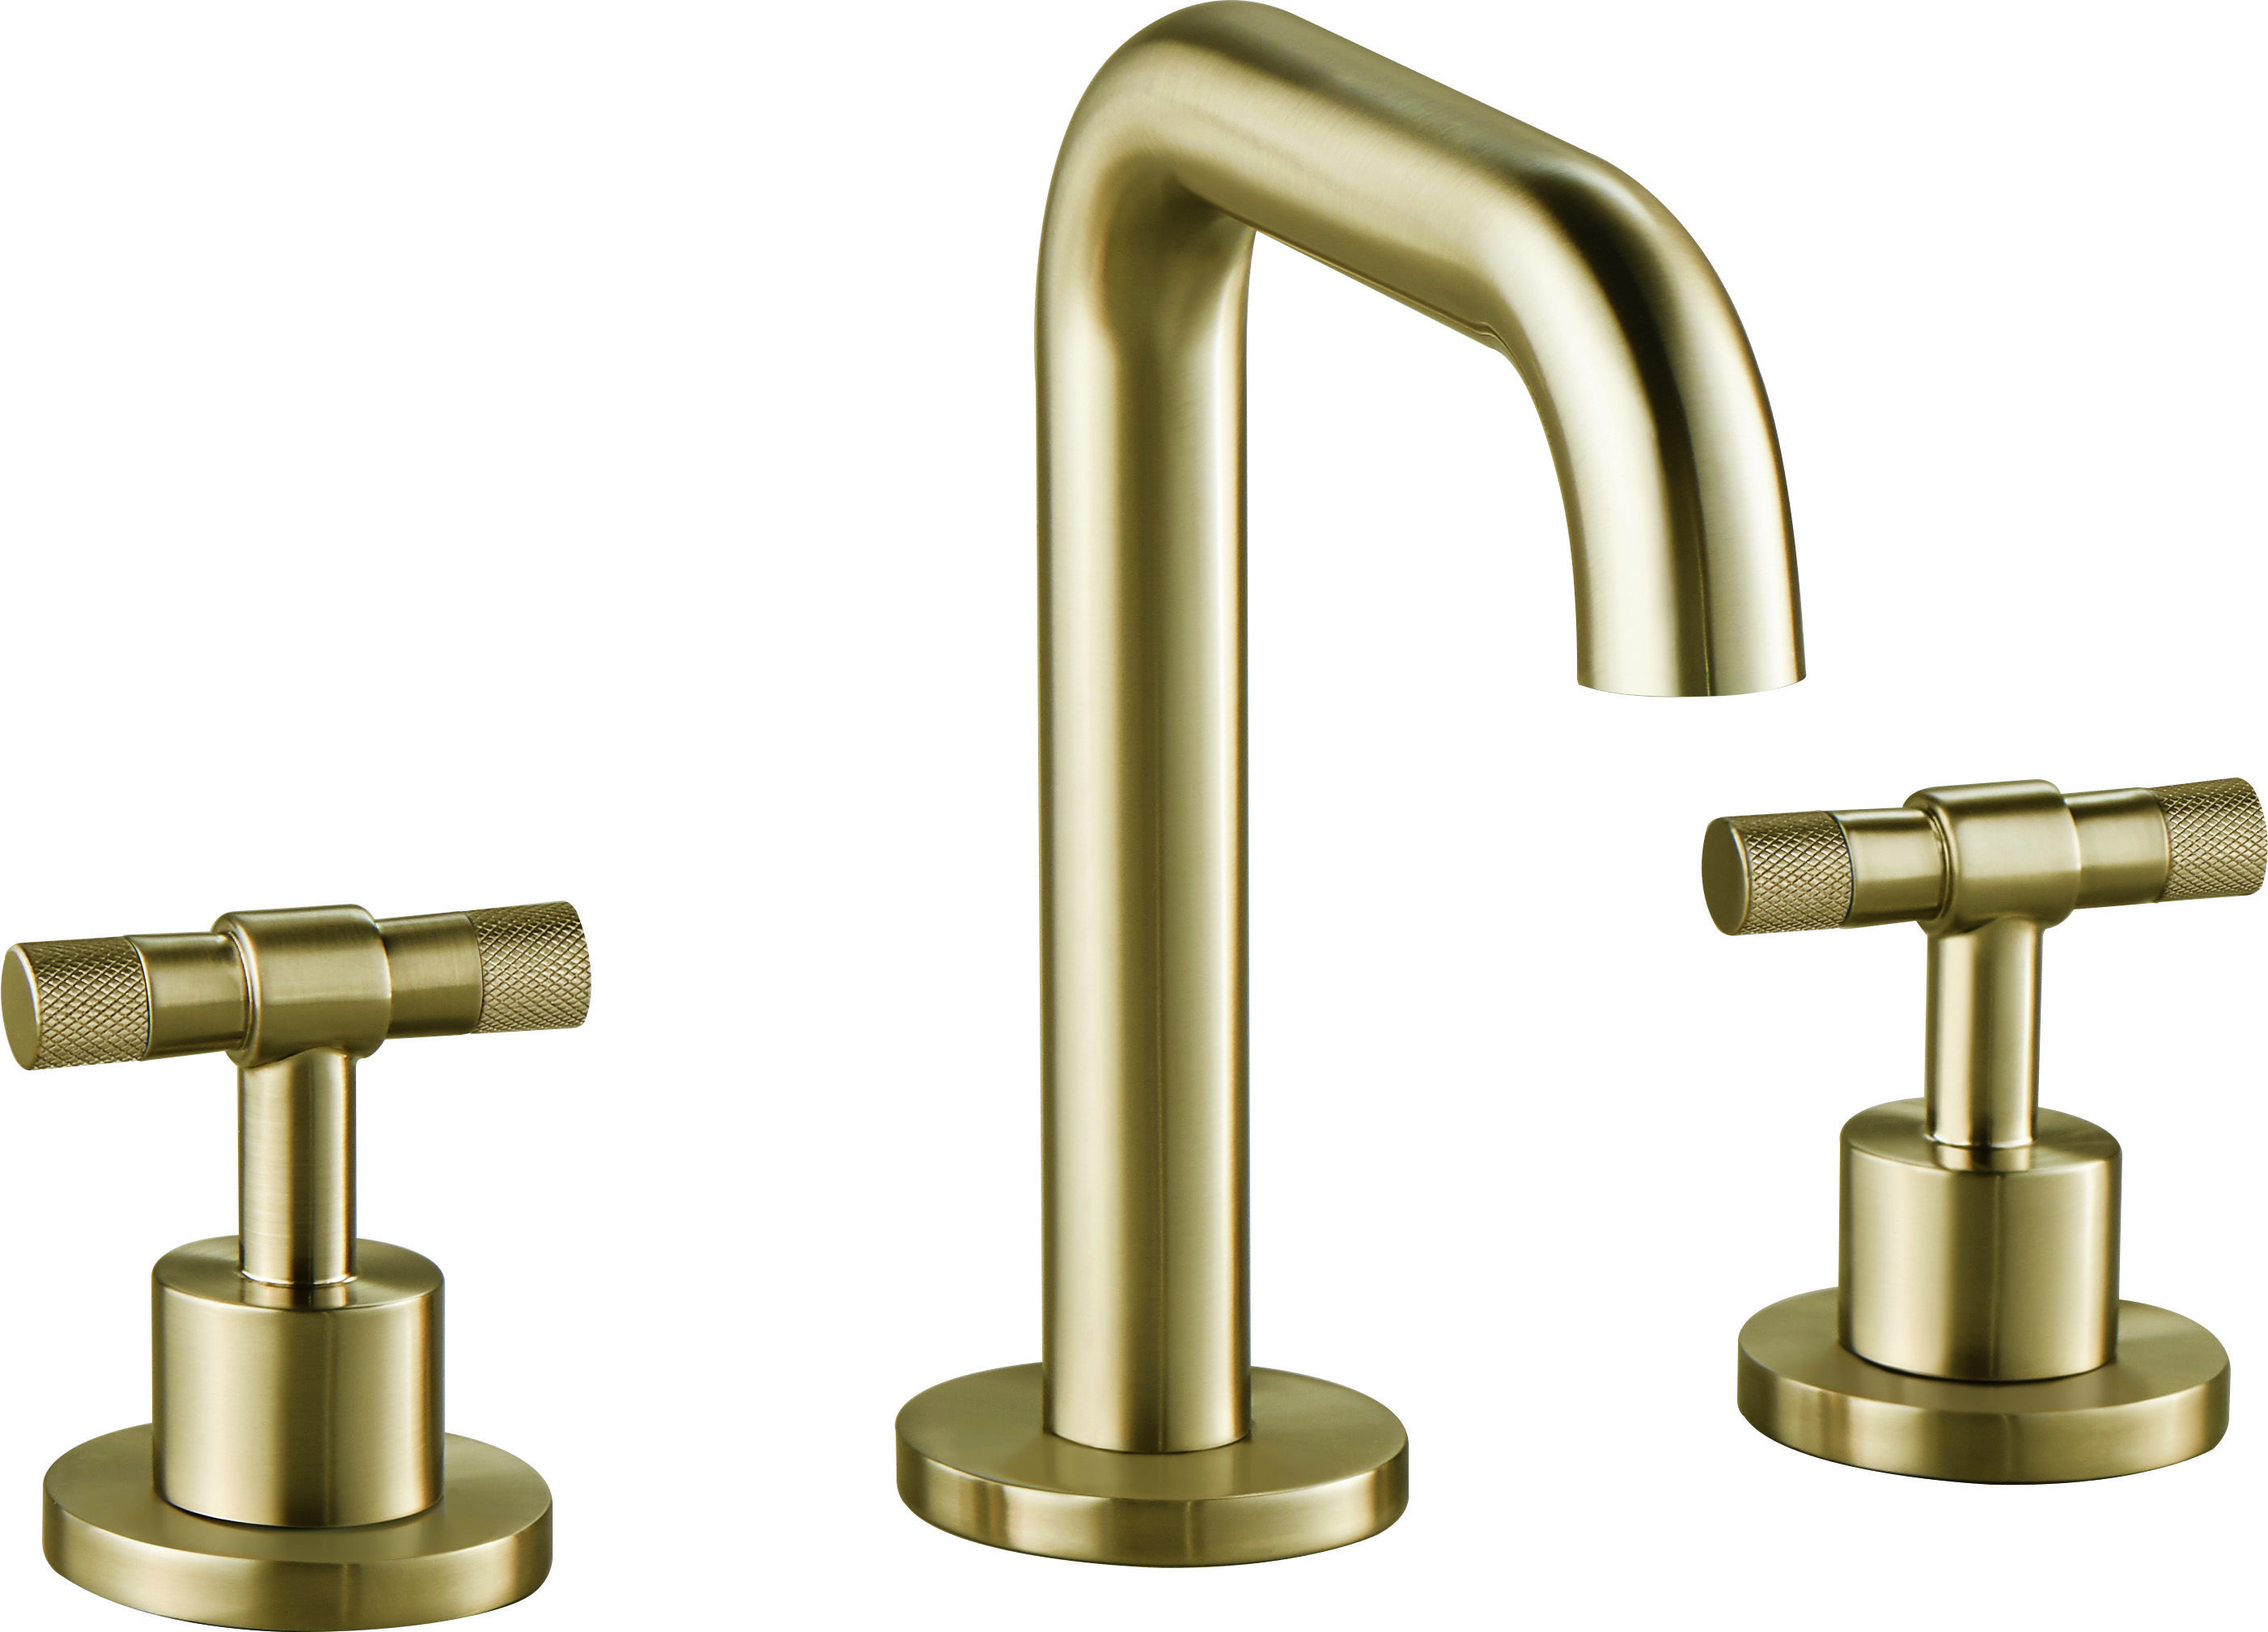 Image Gallery For Website Bathroom sink faucets